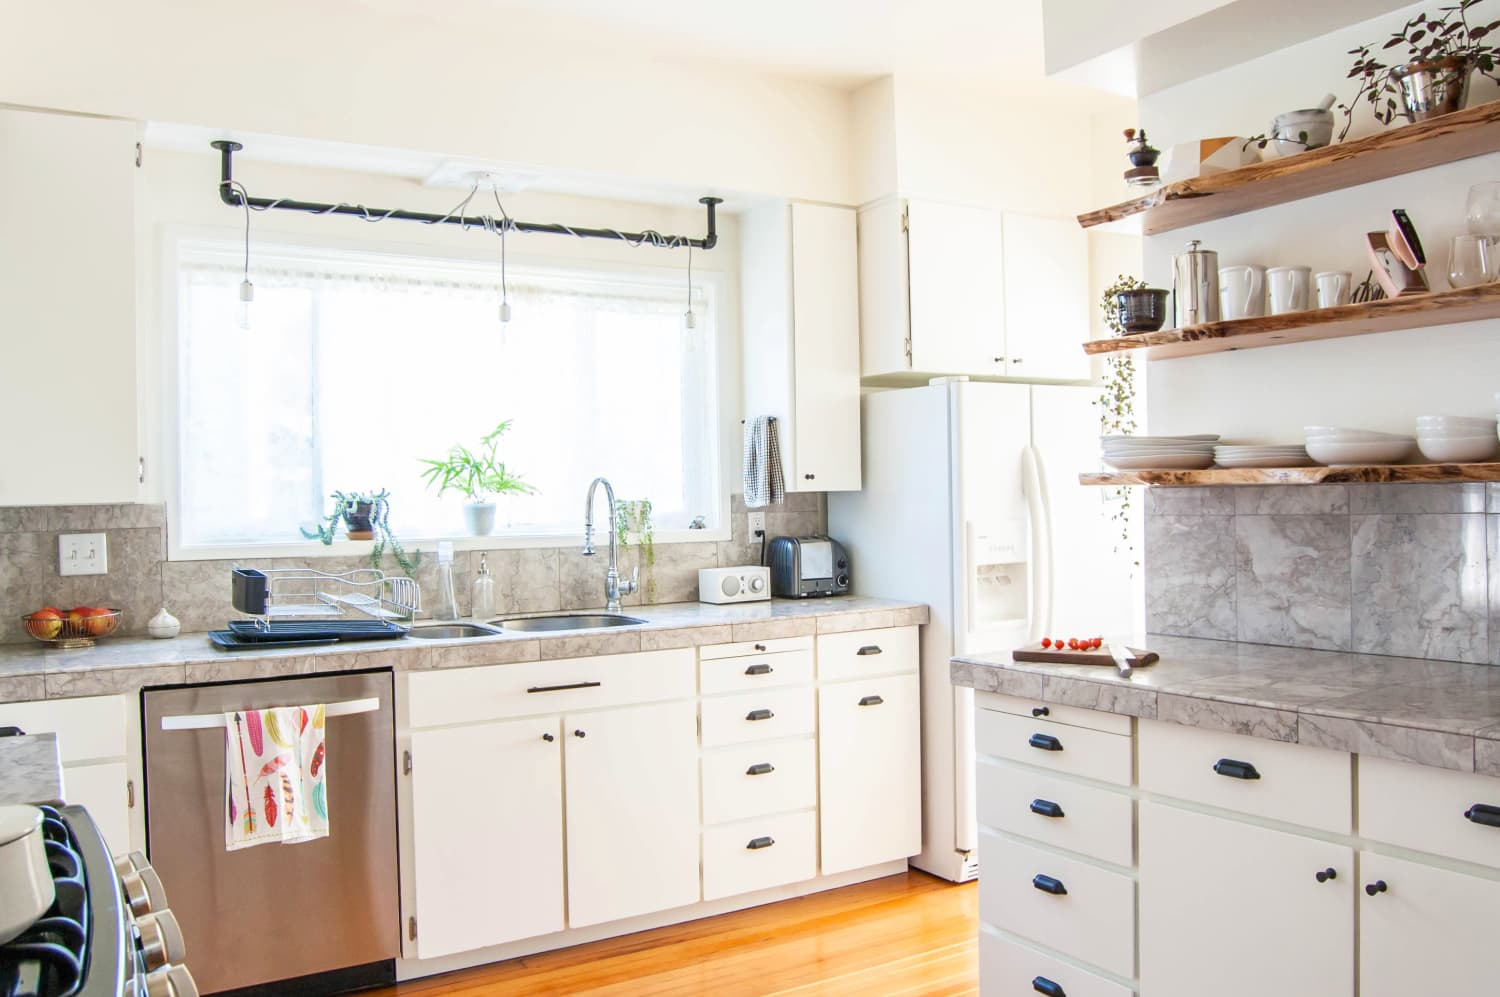 The $22 DIY Cabinet Hack That'll Make Your Kitchen Sink a Million Times Better